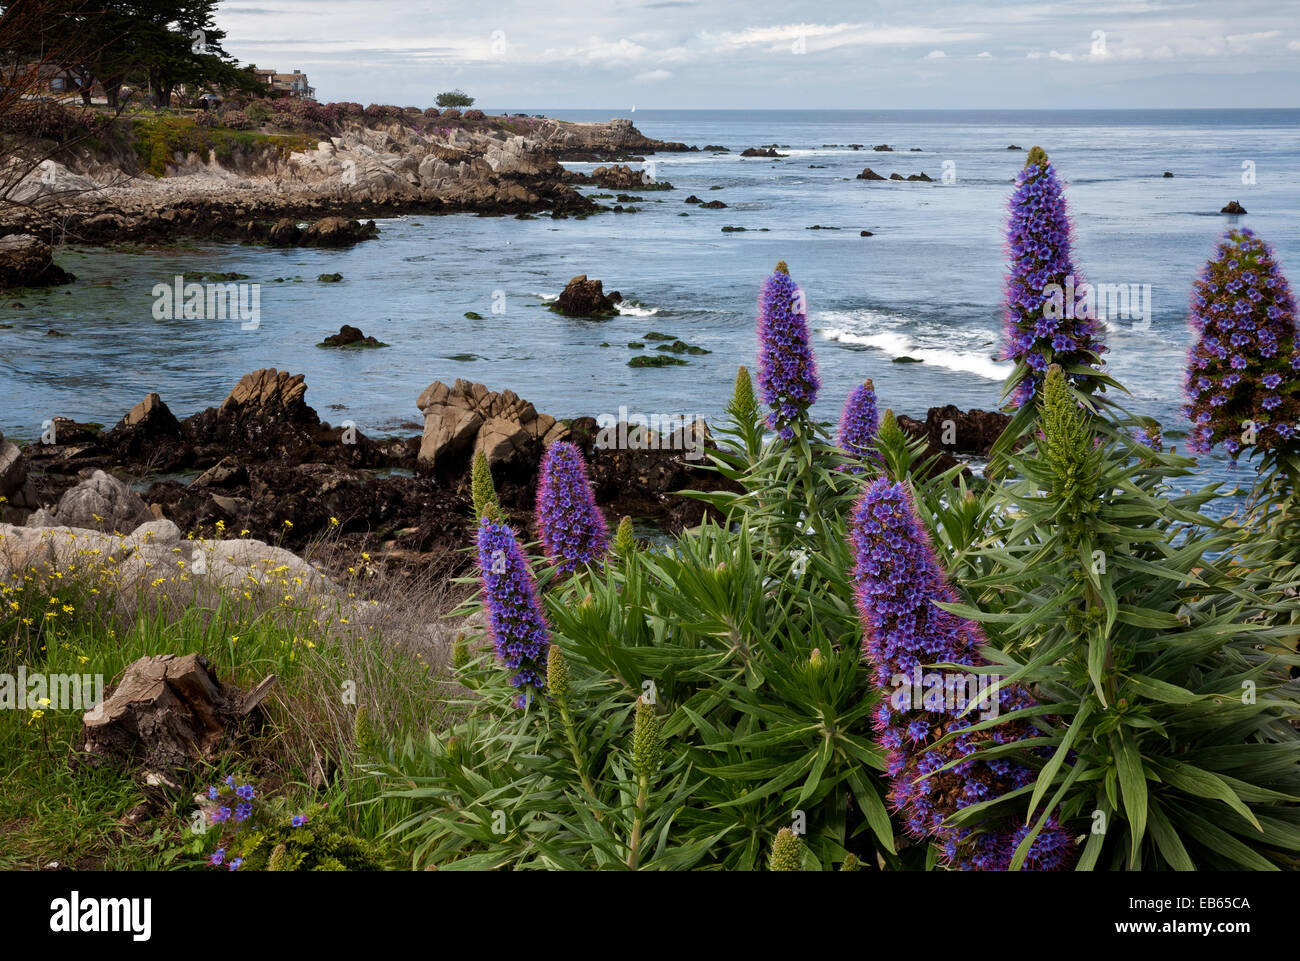 CA02417-00...CALIFORNIA - Colorful flowers blooming along the Monterey waterfront on the shores of Monterey Bay. - Stock Image